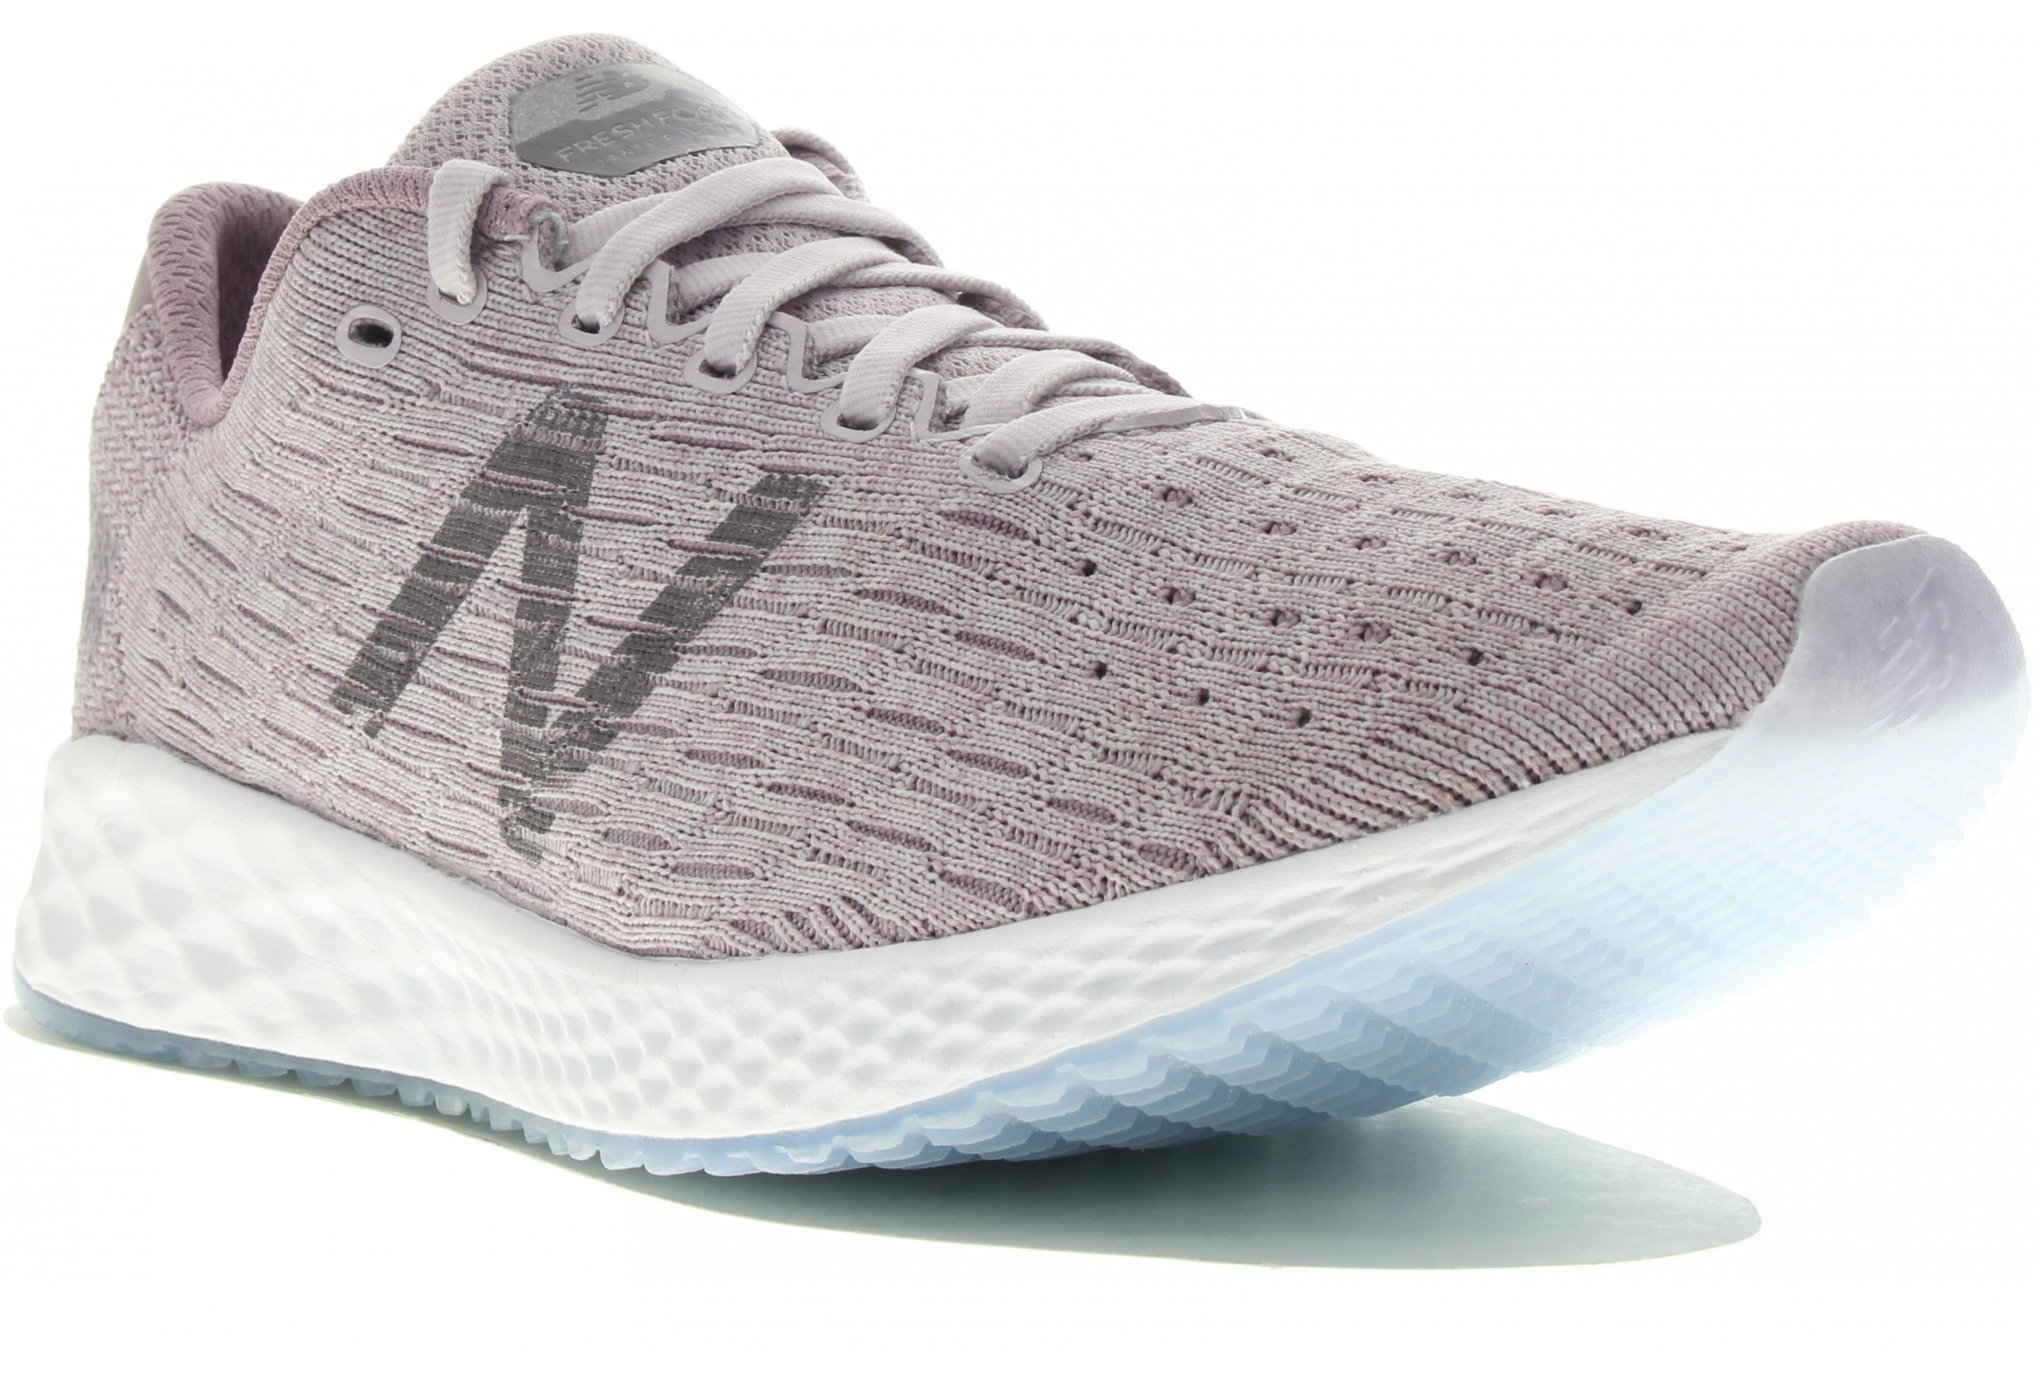 New Balance Fresh Foam Zante Pursuit